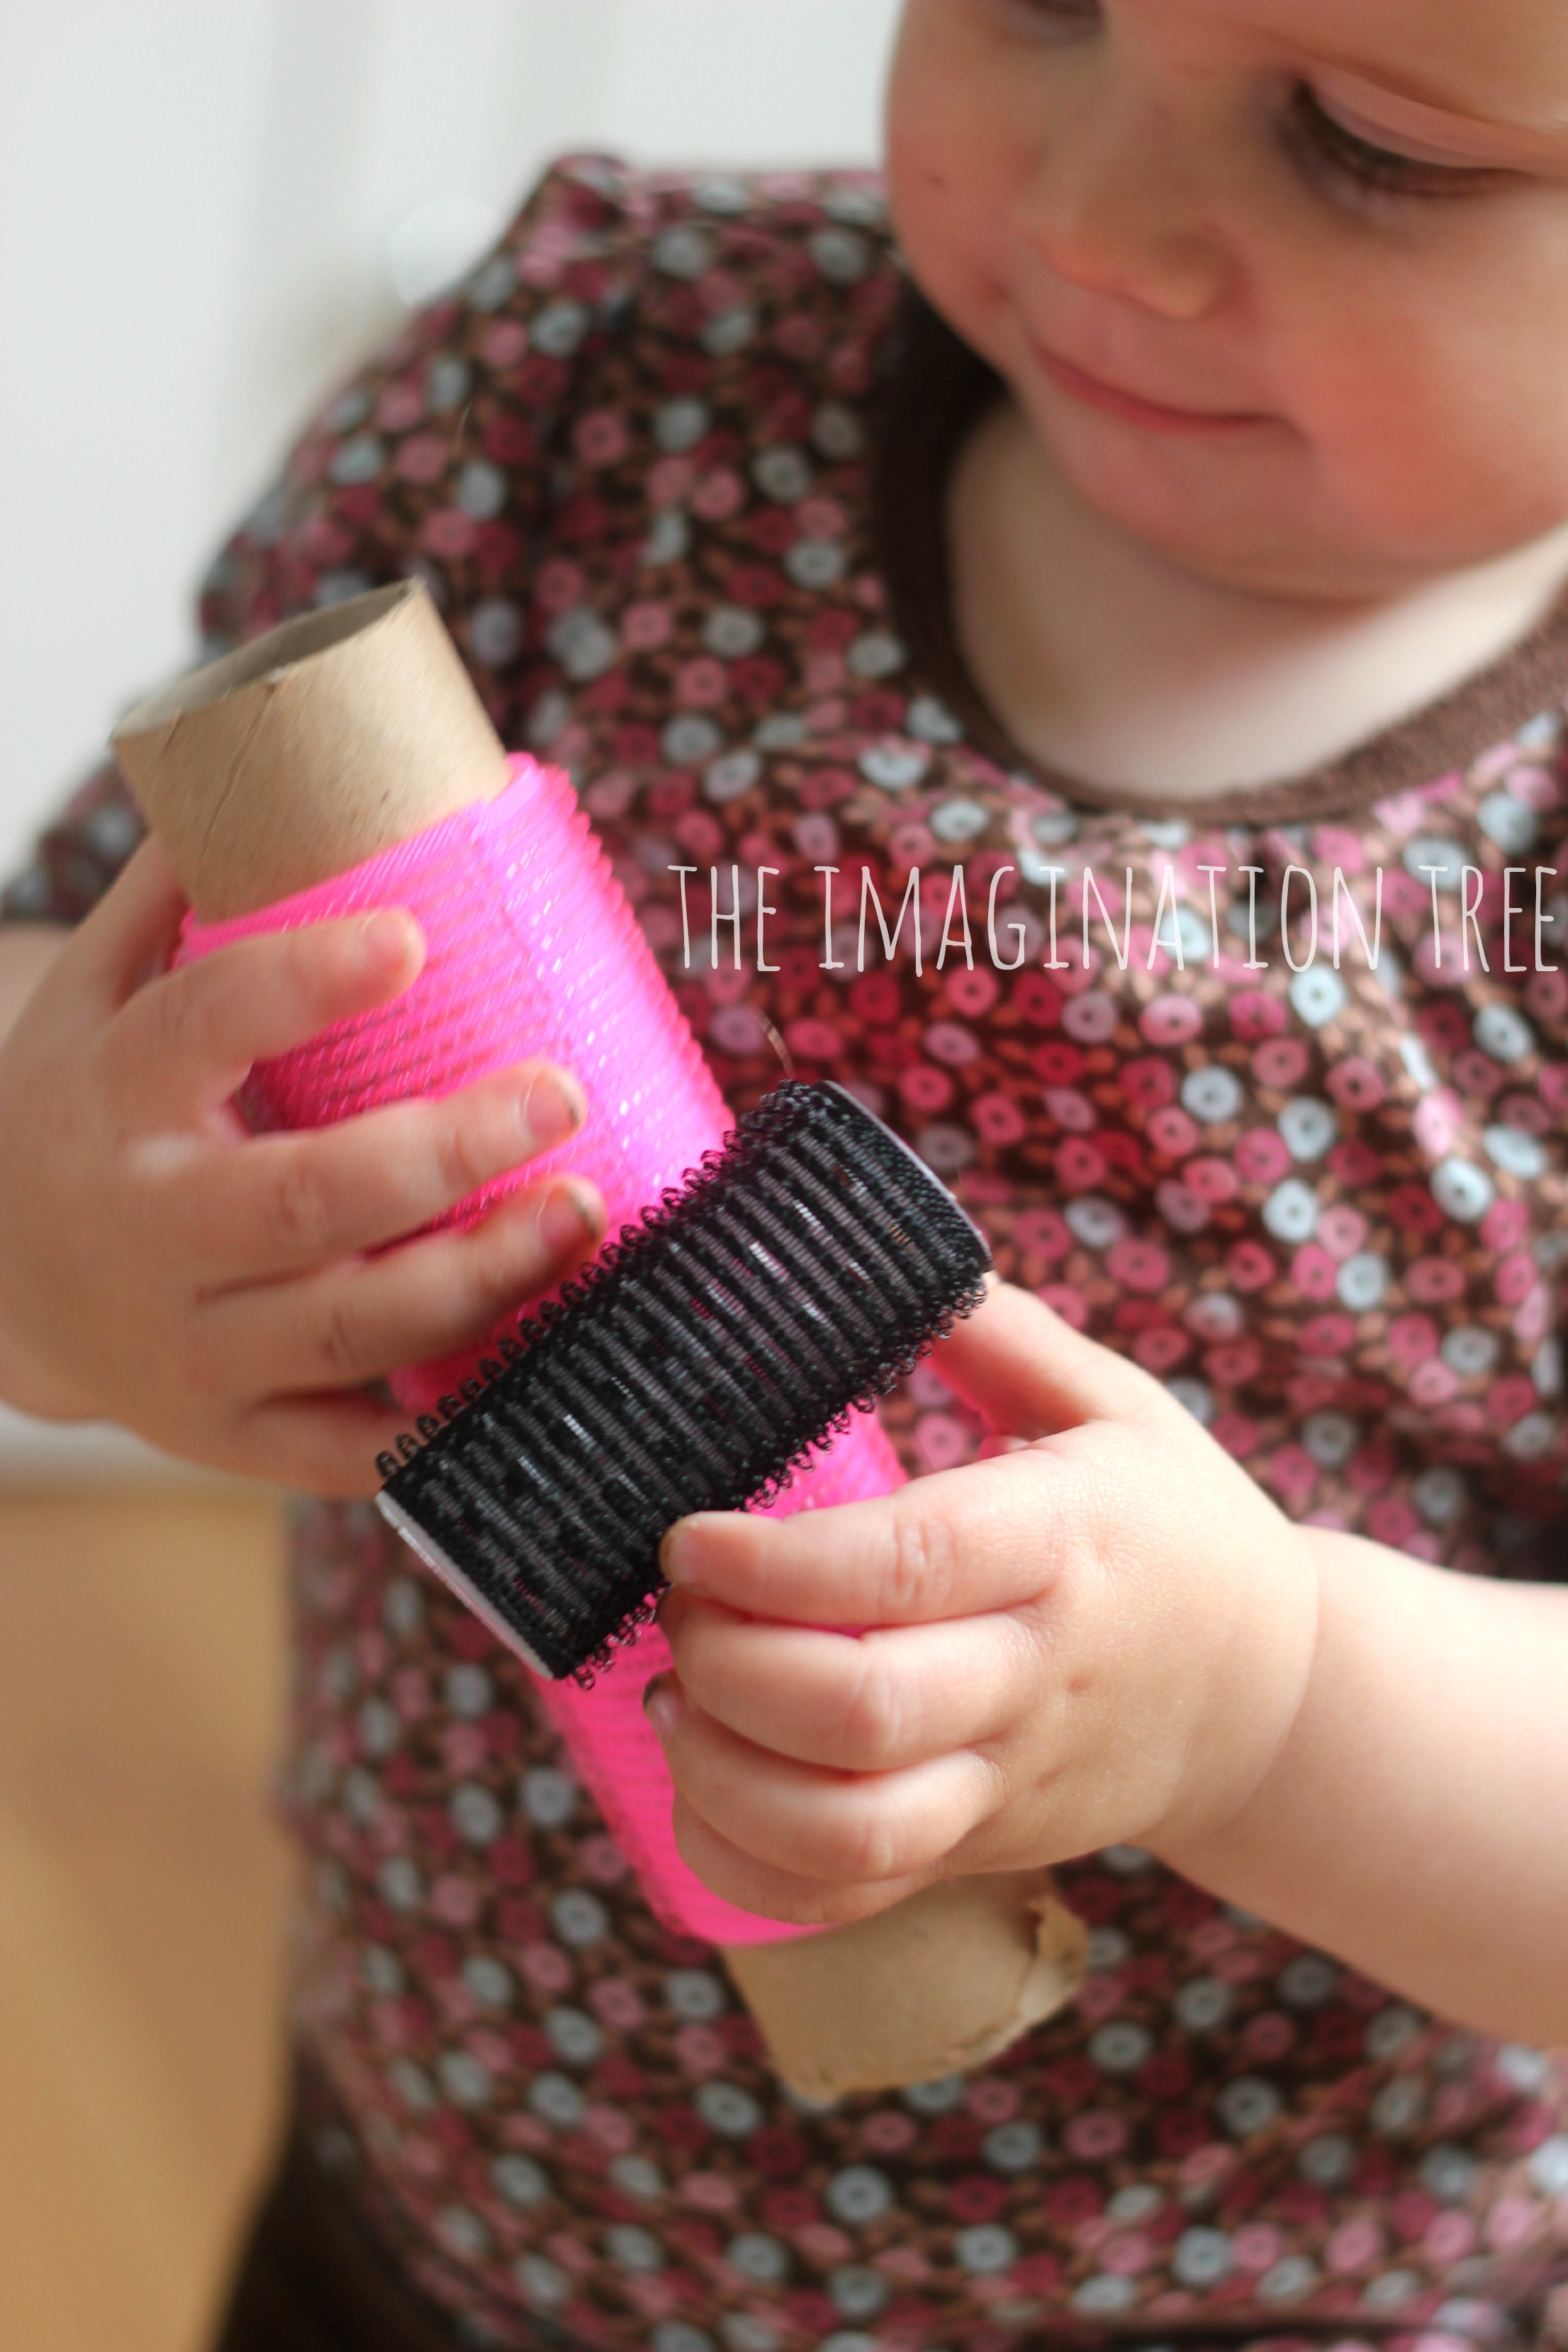 Baby and Toddler Sensory Play with Hair Rollers - The